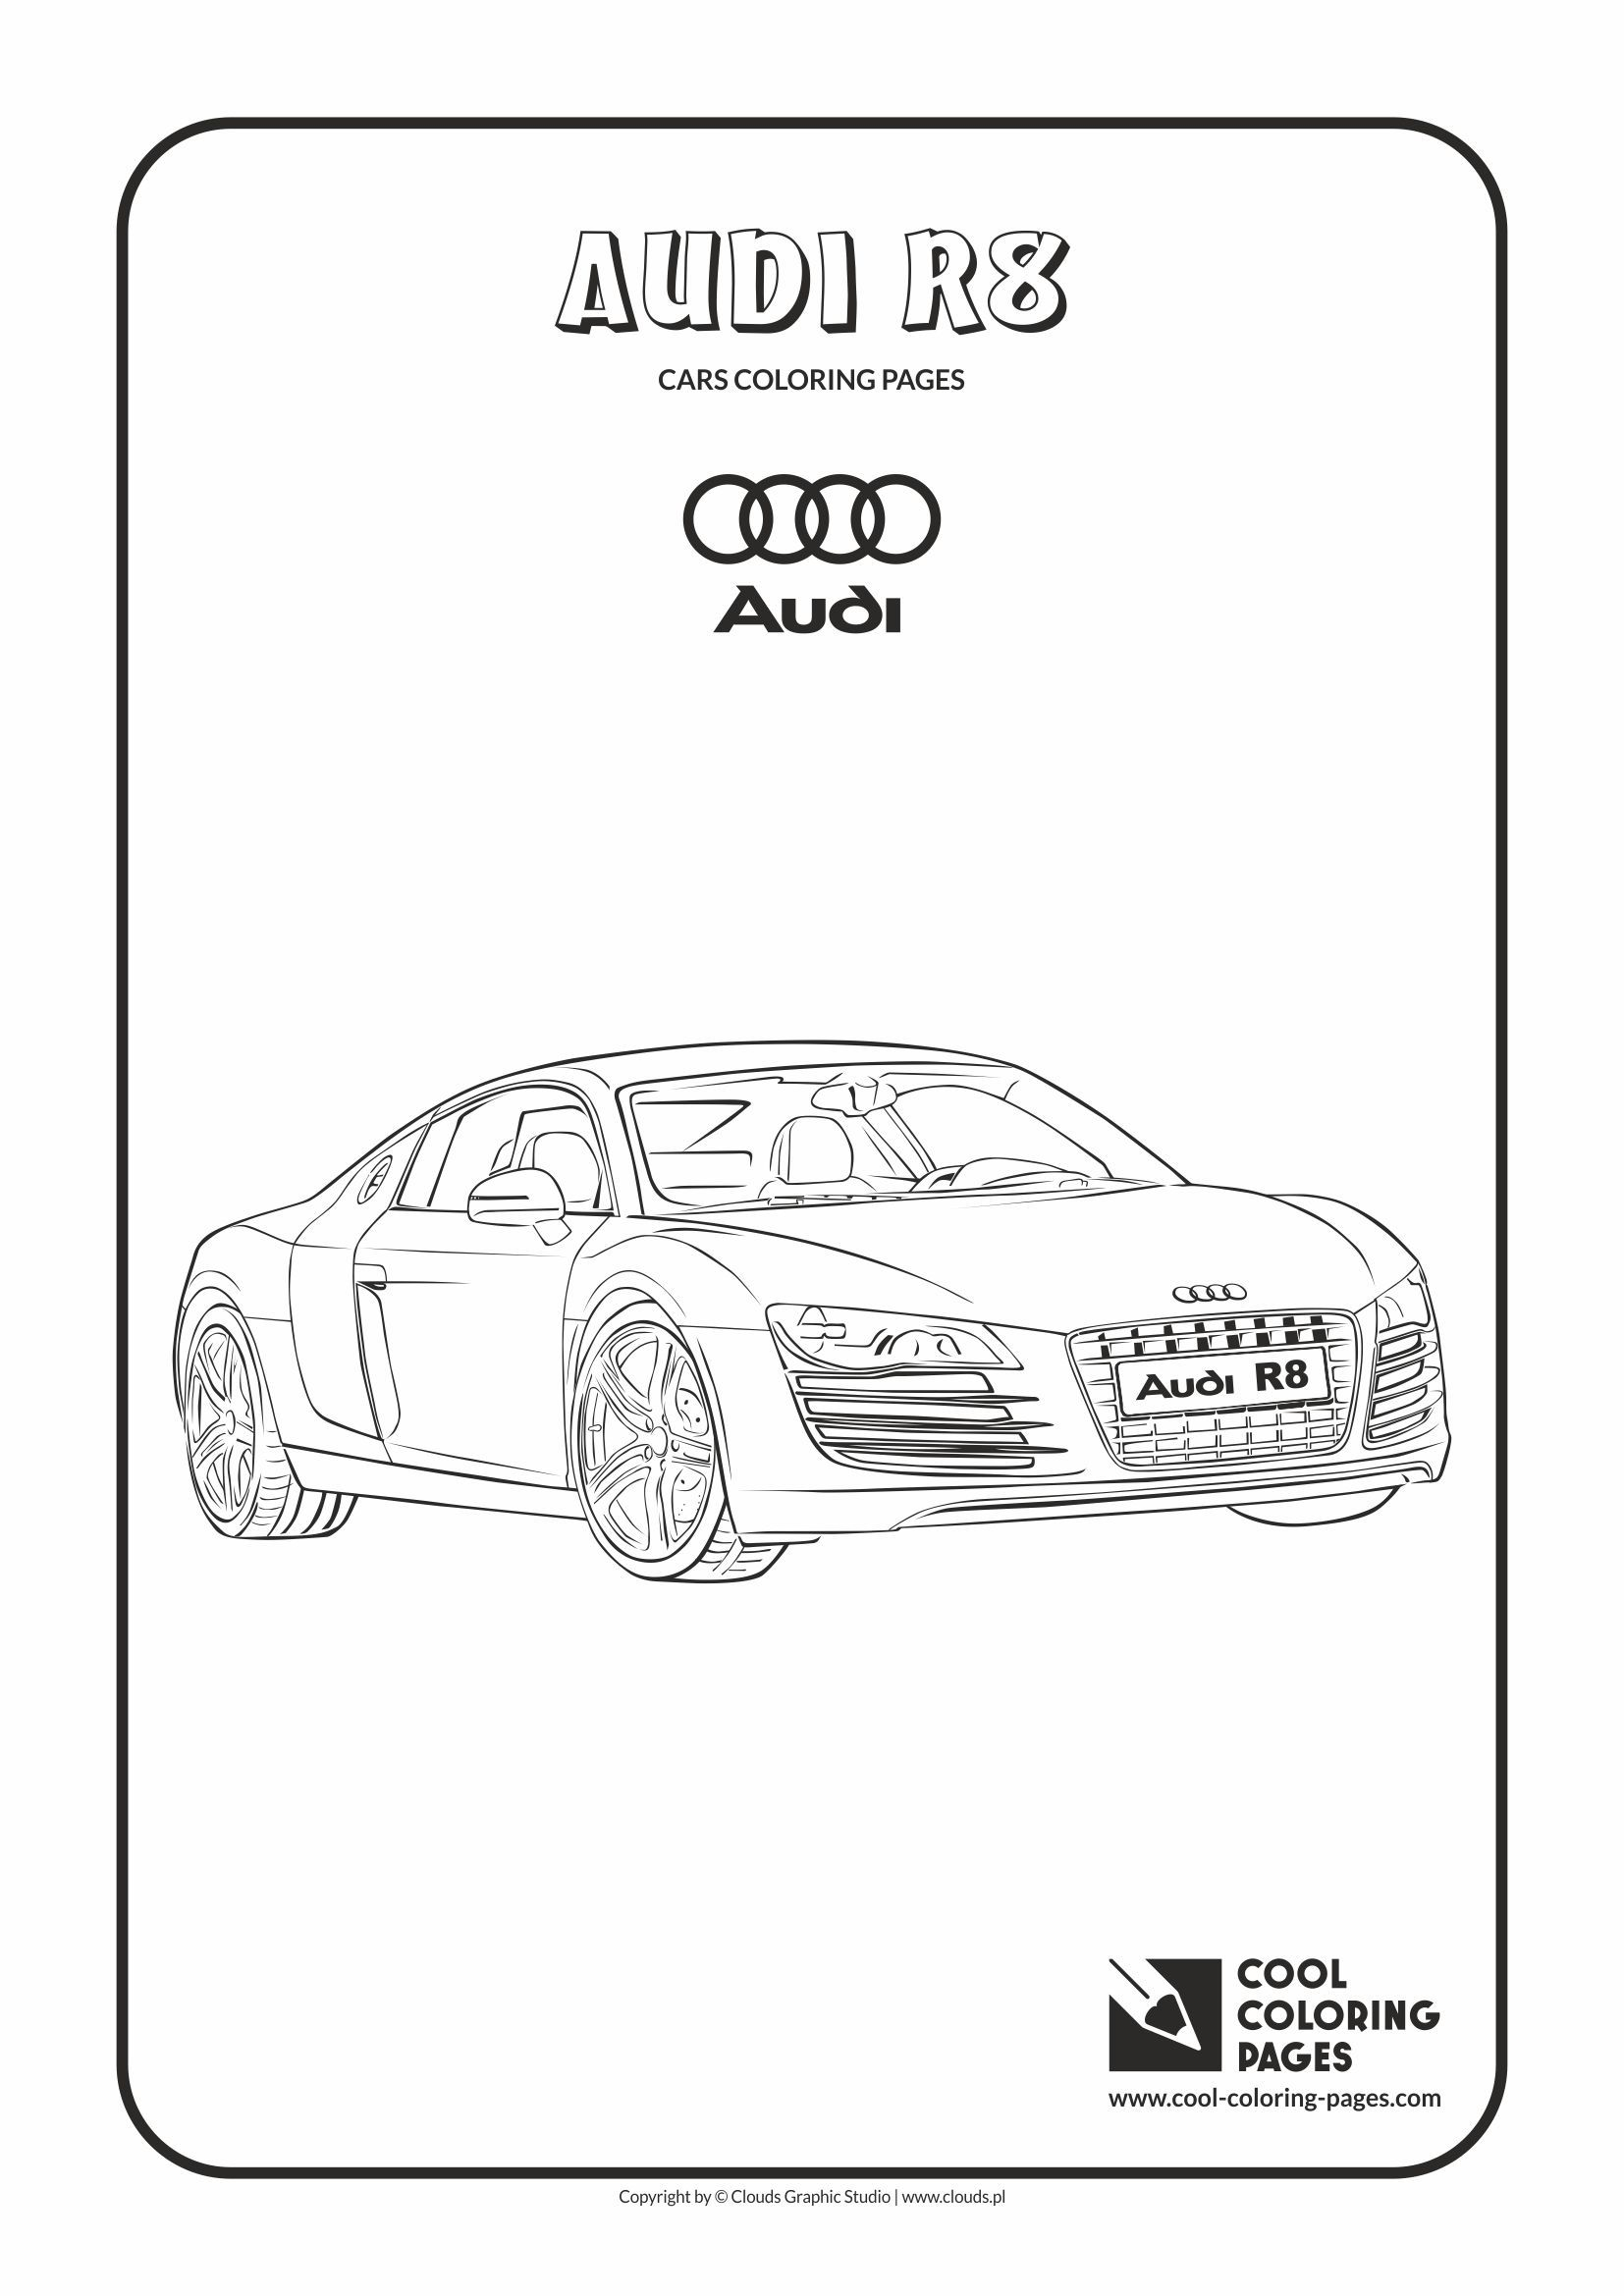 Cool Coloring Pages Vehicles Audi R8 Coloring Page With Audi R8 Cars Coloring Pages Cool Coloring Pages Coloring Pages